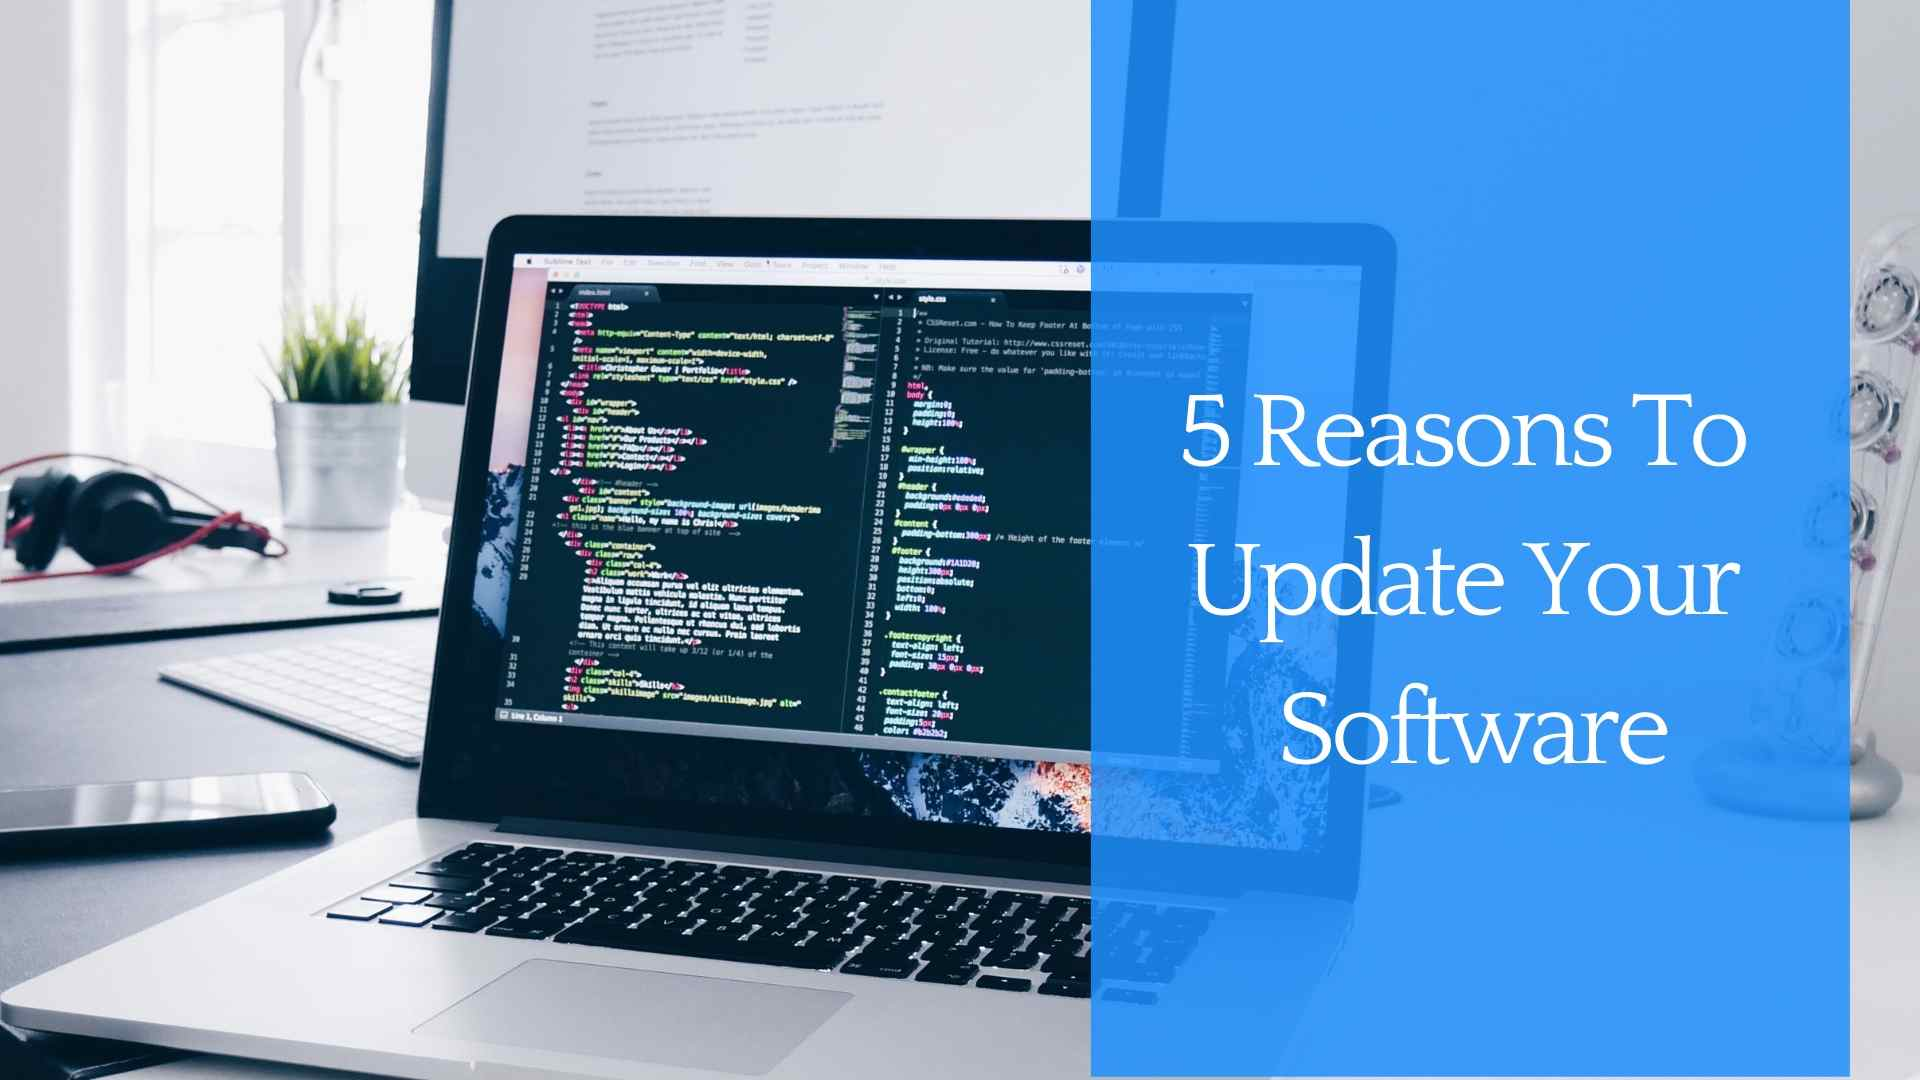 5 Reasons To Update Your Software